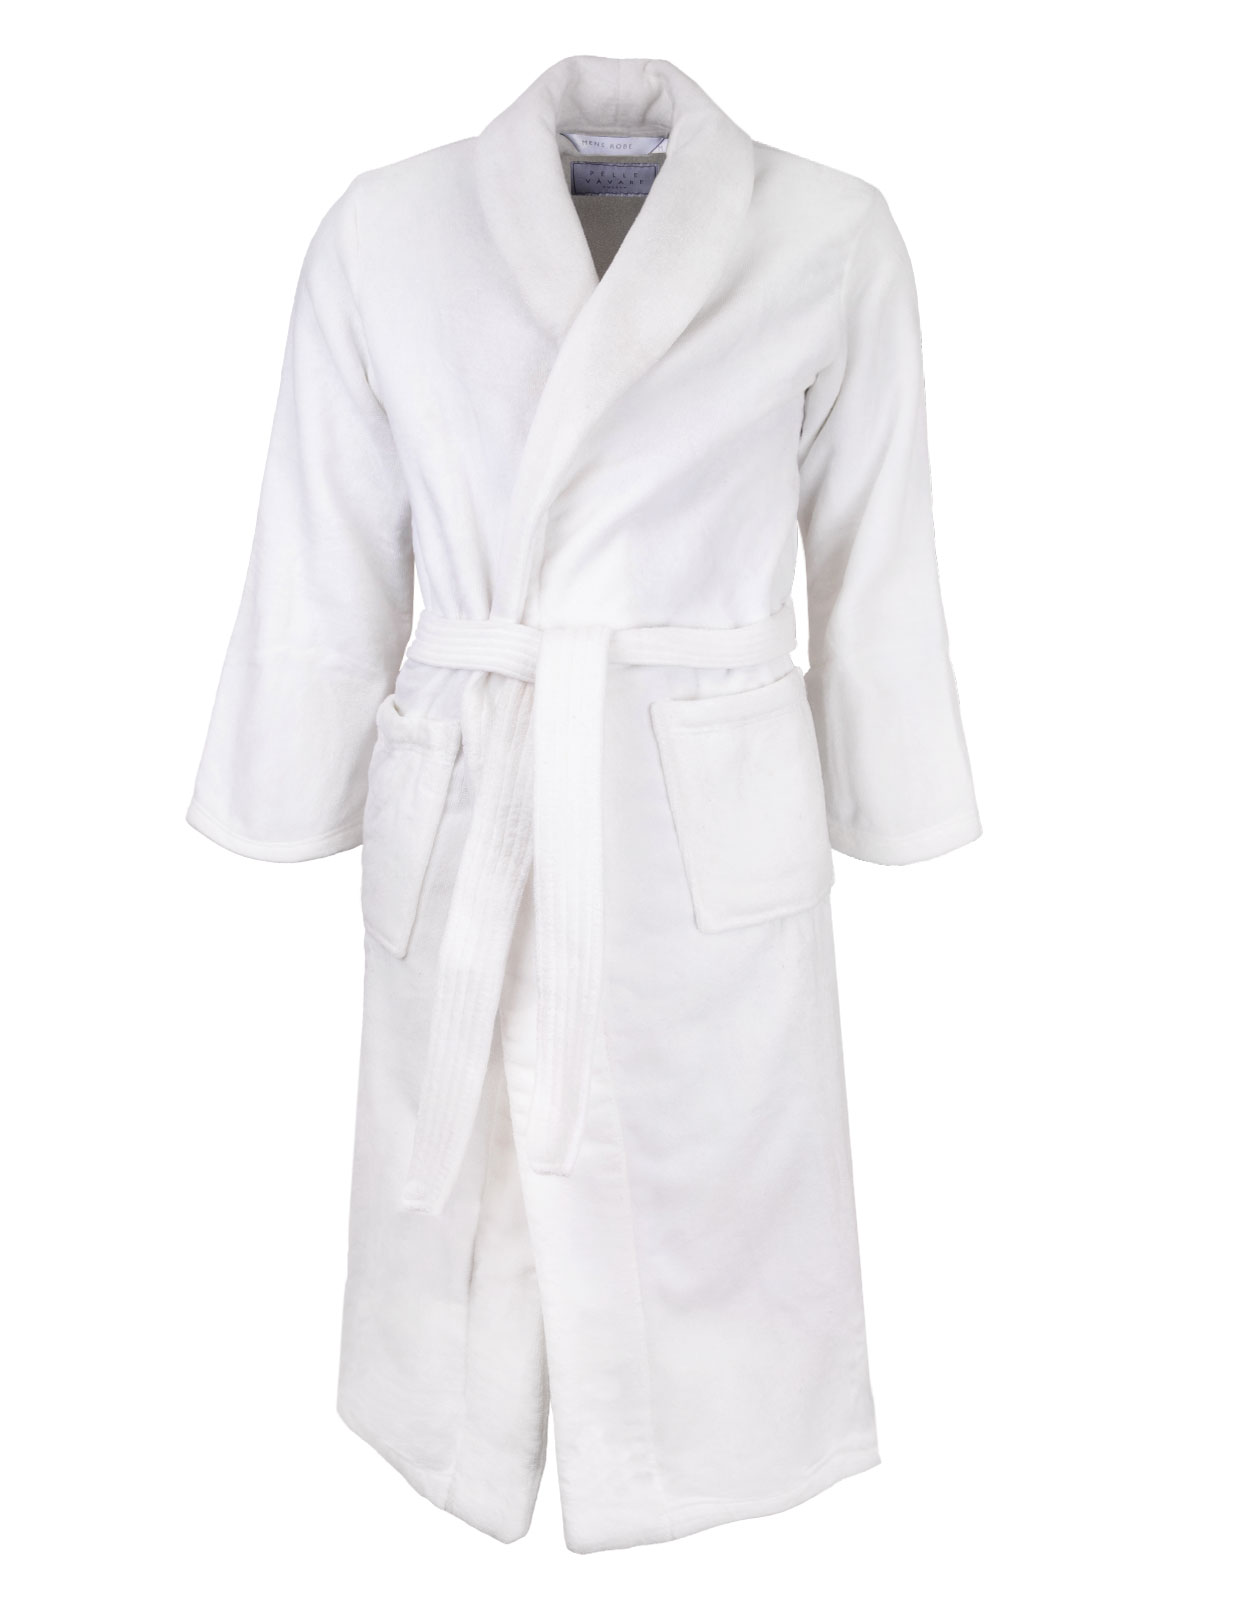 Morgonrock Torekov Gents White